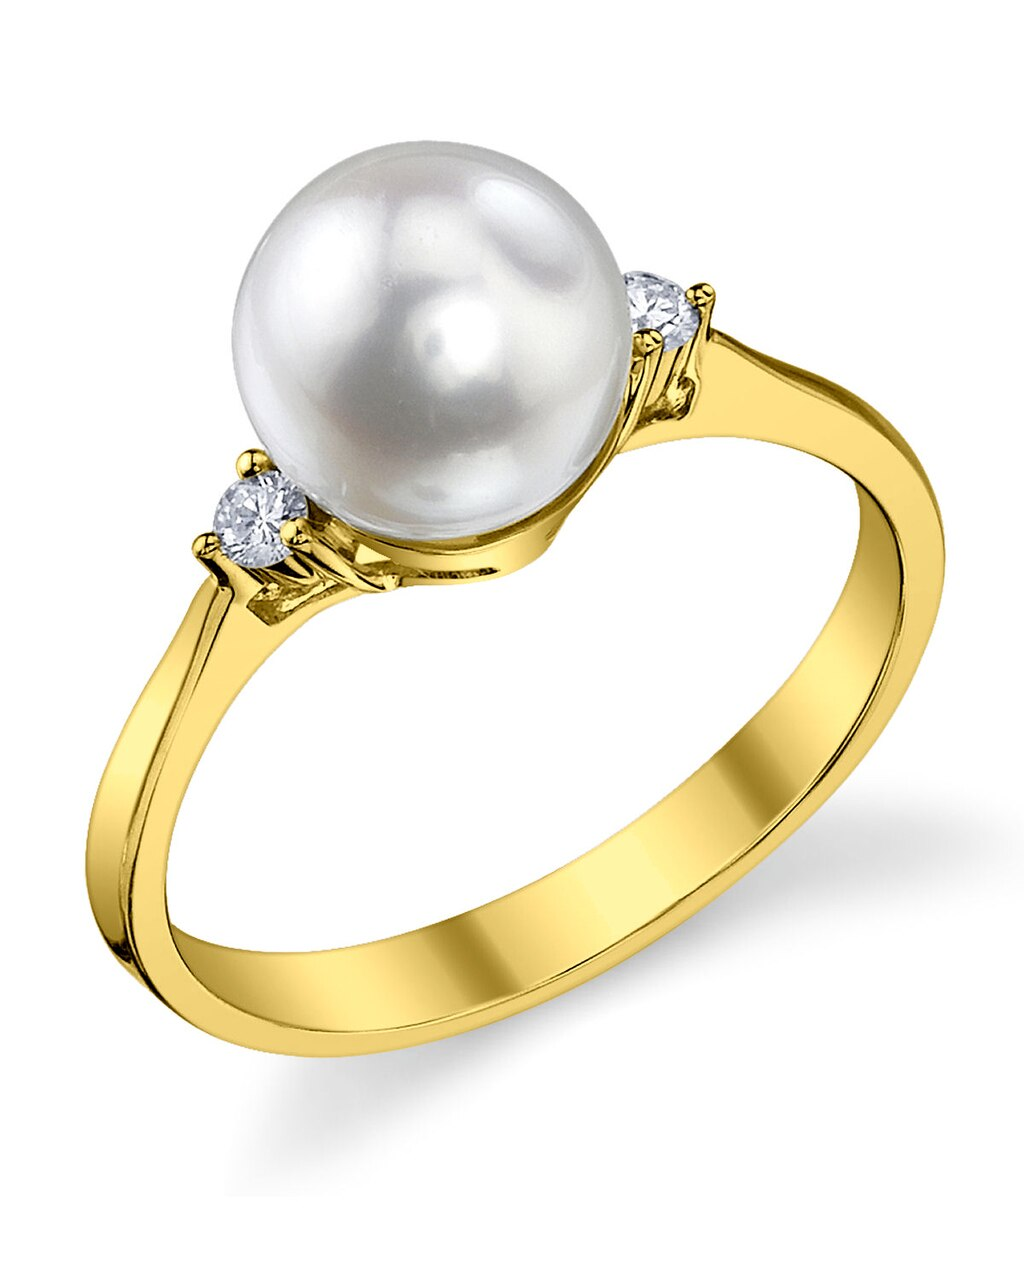 This exquisite ring features an 7.5-8.0mm Japanese Akoya pearl, handpicked for its luminous luster